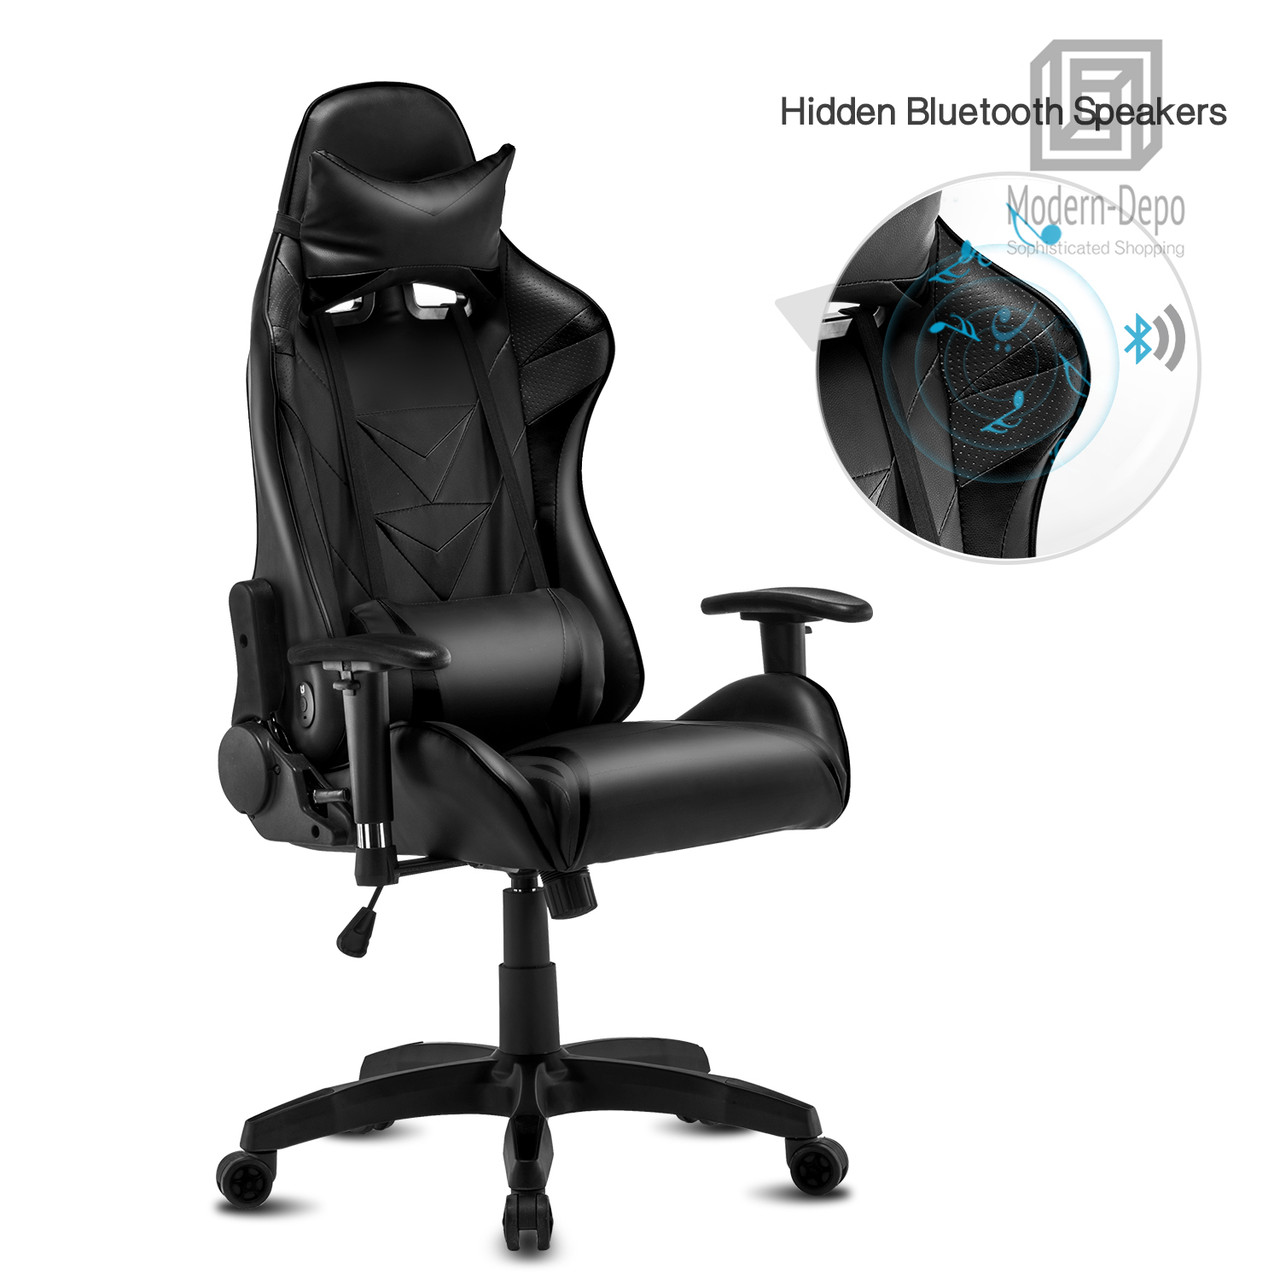 High Back Swivel Gaming Chair Recliner With Bluetooth 4 1 Version Speakers Lumbar Support Headrest Height Adjustable Ergonomic Office Desk Chair Black Modern Depo